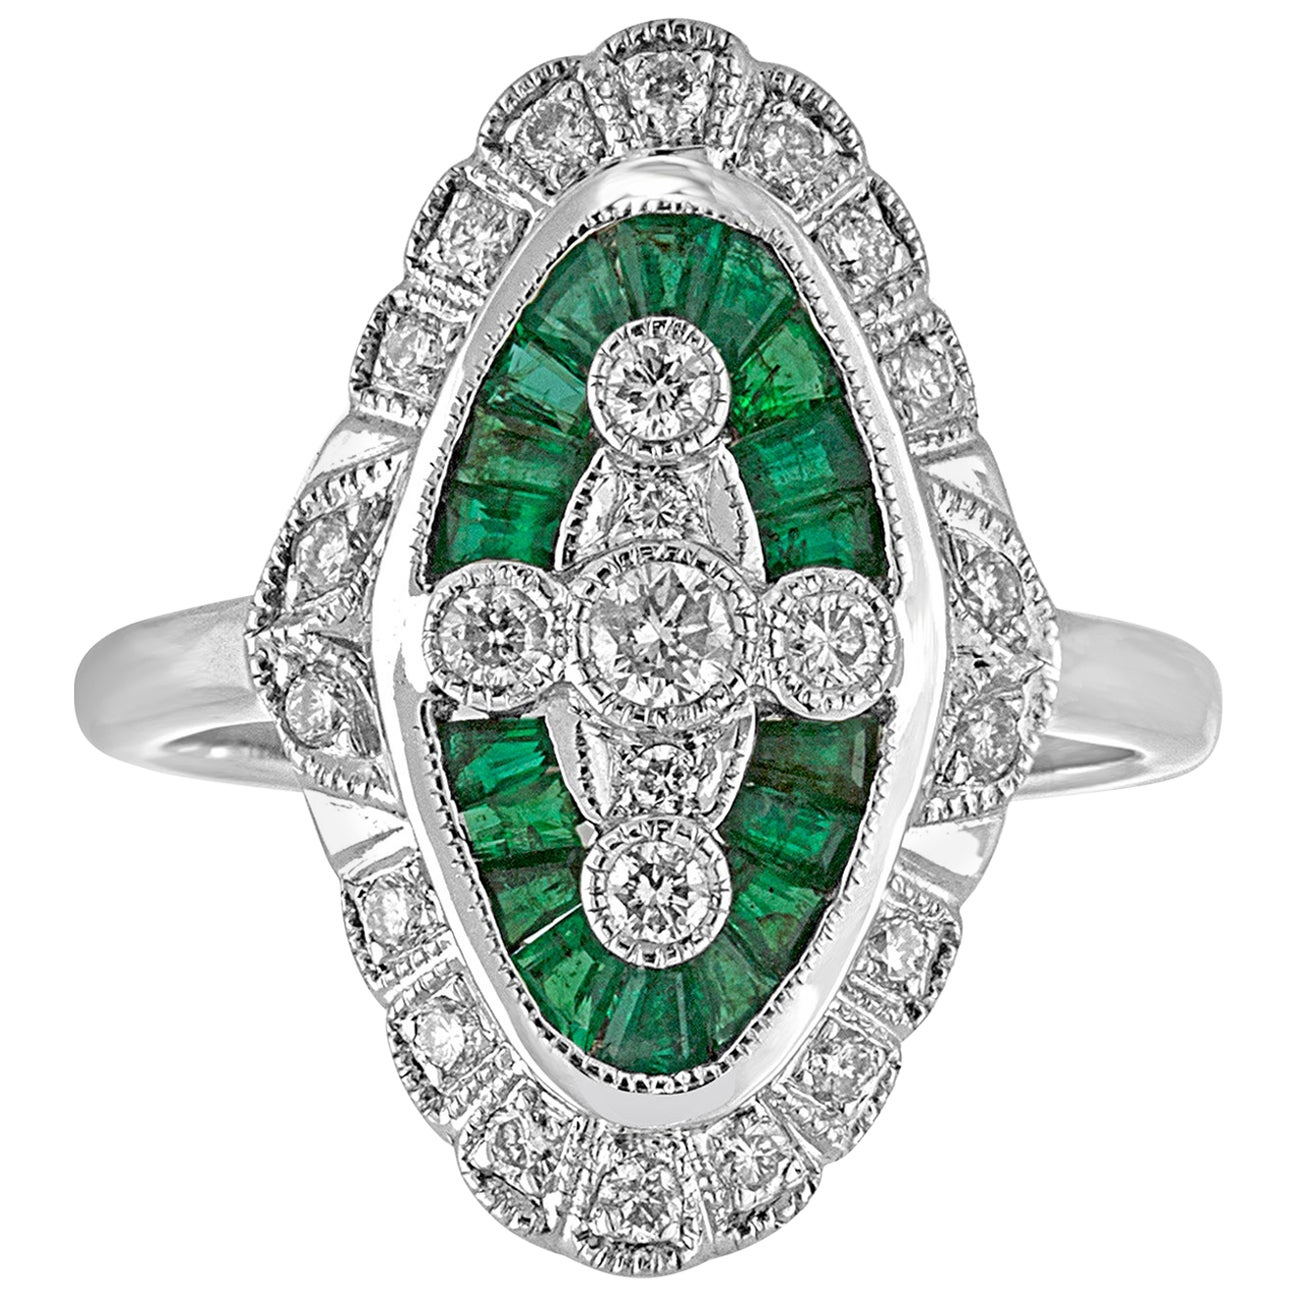 1.00 Carat Emerald Diamond Gold Ring